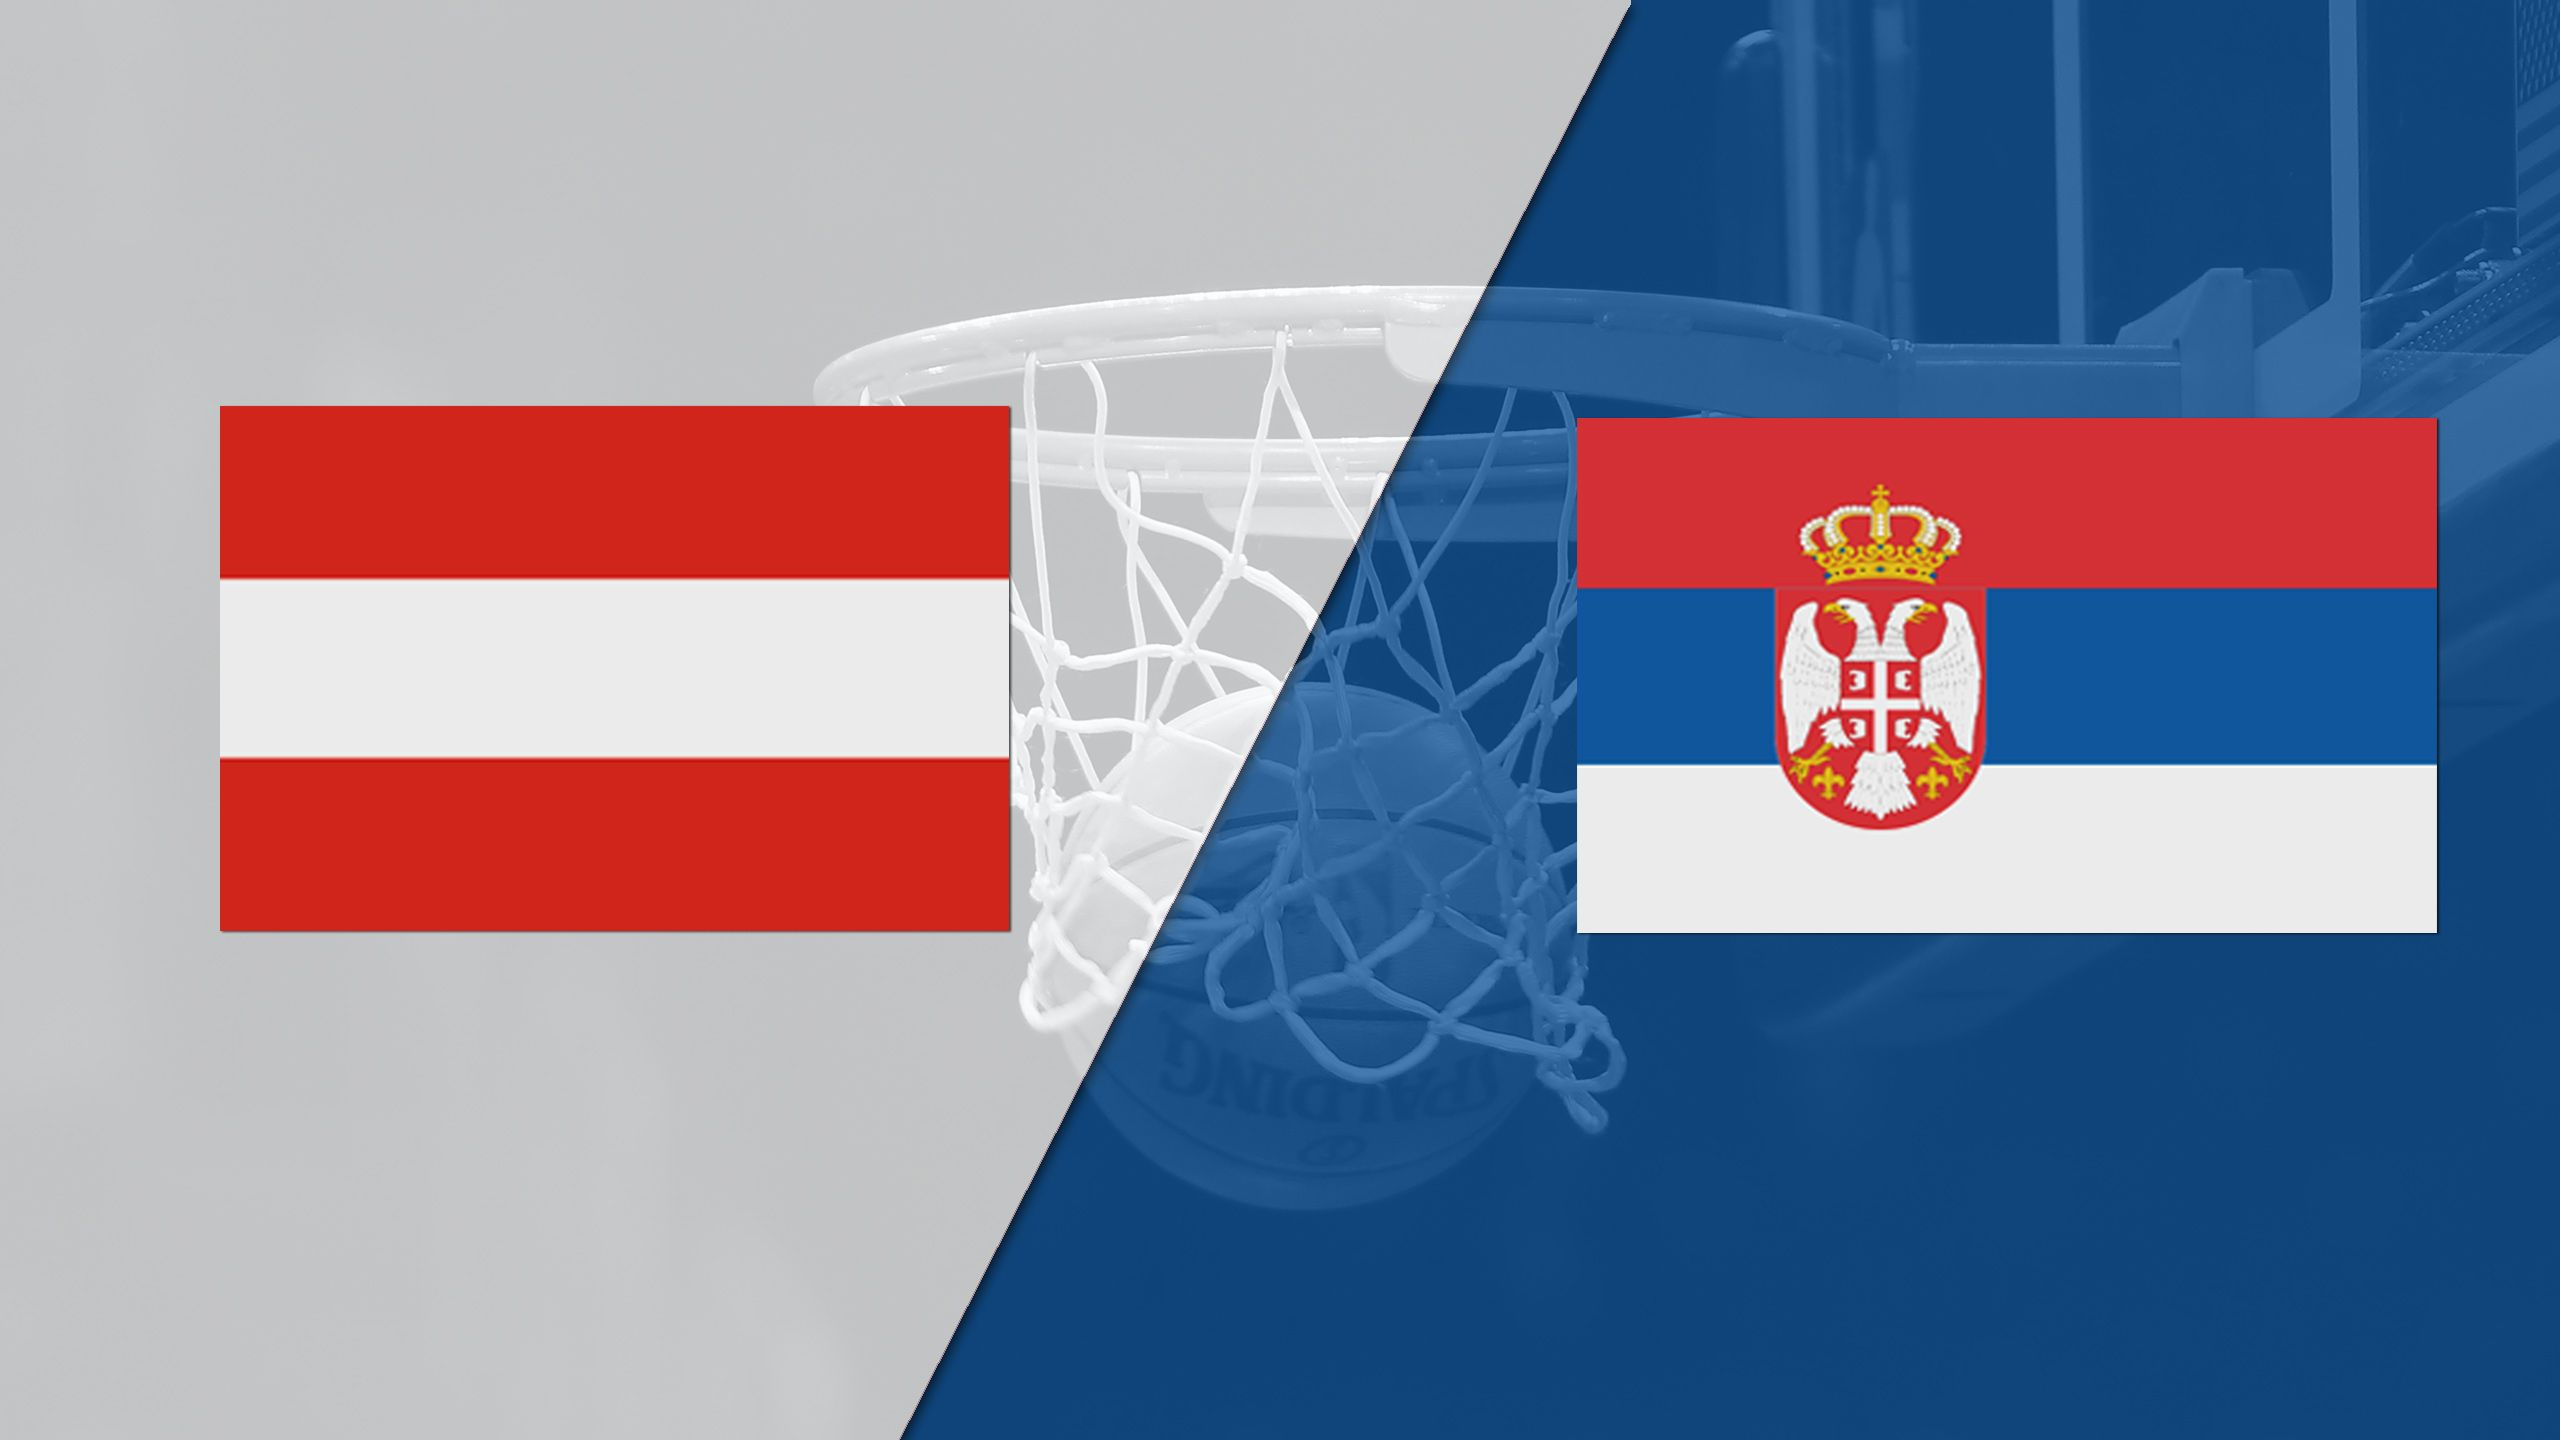 Austria vs. Serbia (FIBA World Cup 2019 Qualifier)